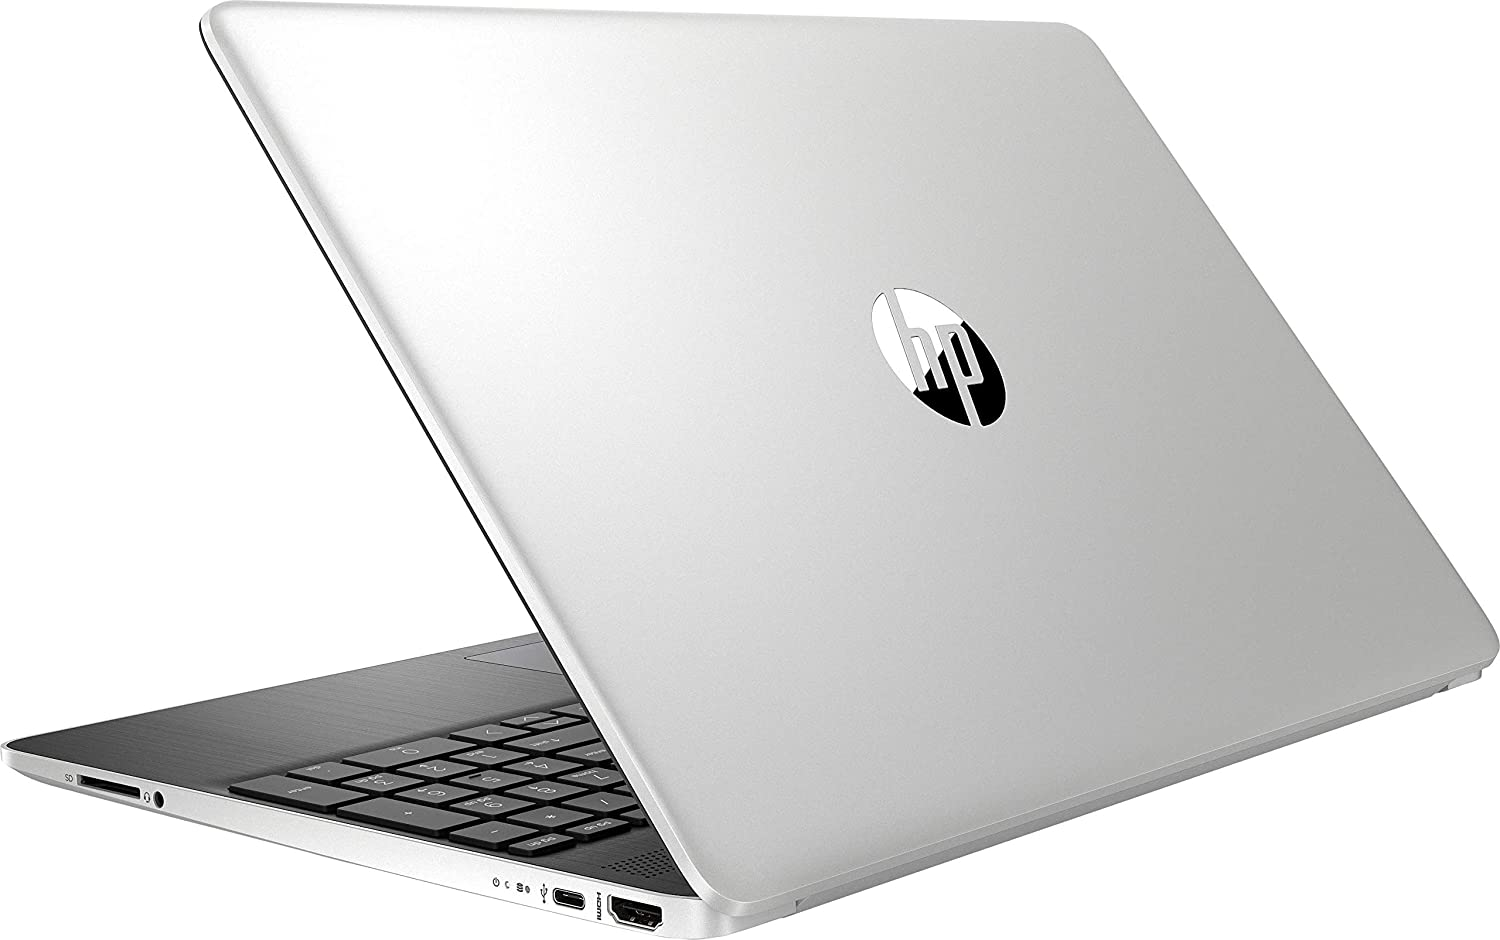 HP Notebook 15s-fq1025ns review